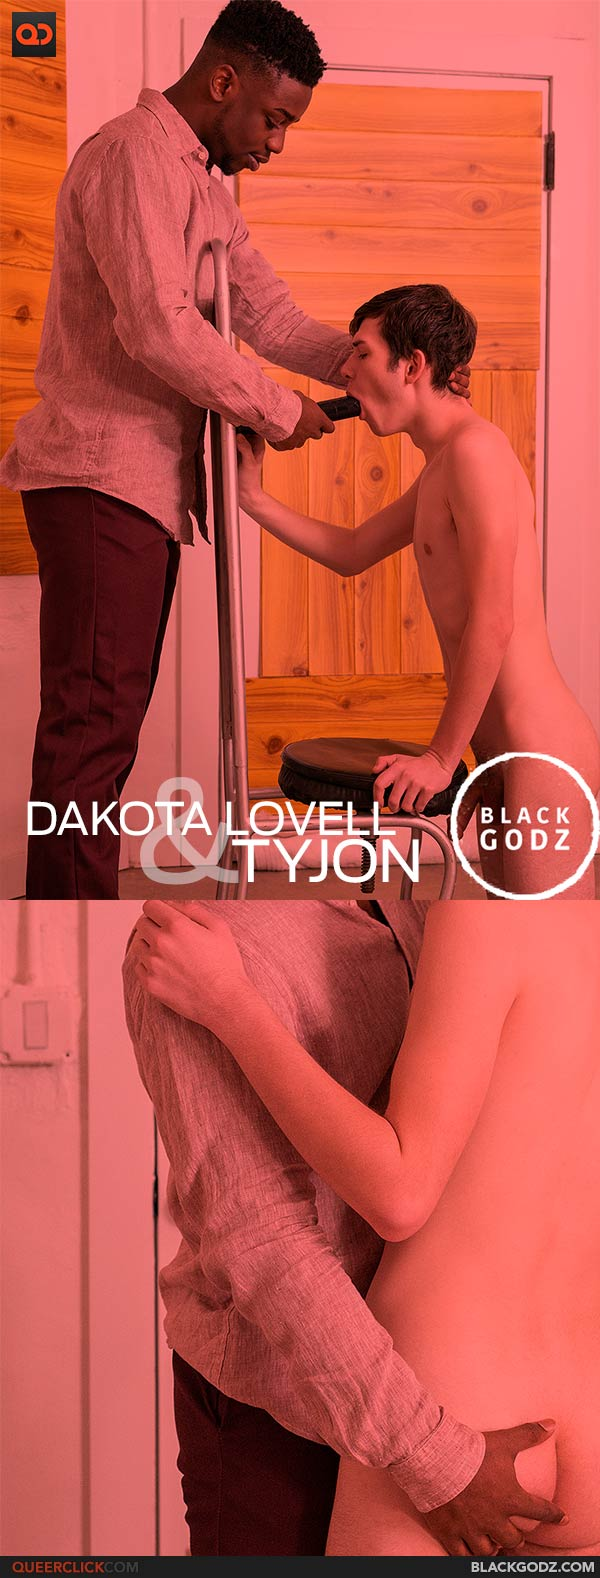 BlackGodz: Dakota Lovell and Tyjon - VALENTINE'S DAY SAVINGS - LIMITED TIME OFFER!